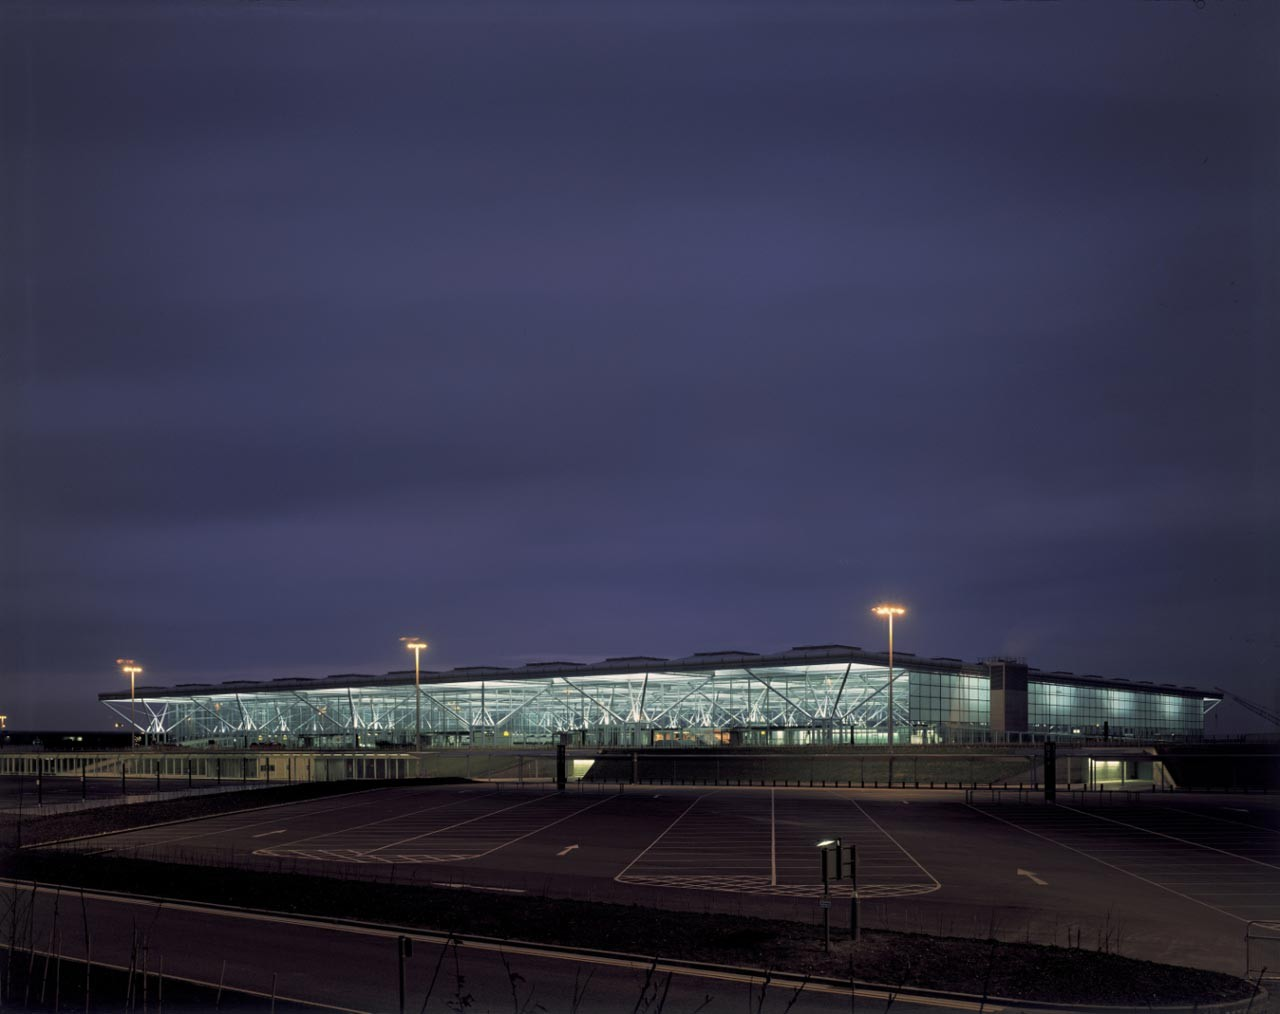 Jane Priestman Wins Inaugural Ada Louise Huxtable Prize, Priestman worked with Foster + Partners on the Stansted Airport during her time at the British Airports Authority. Image © Foster + Partners